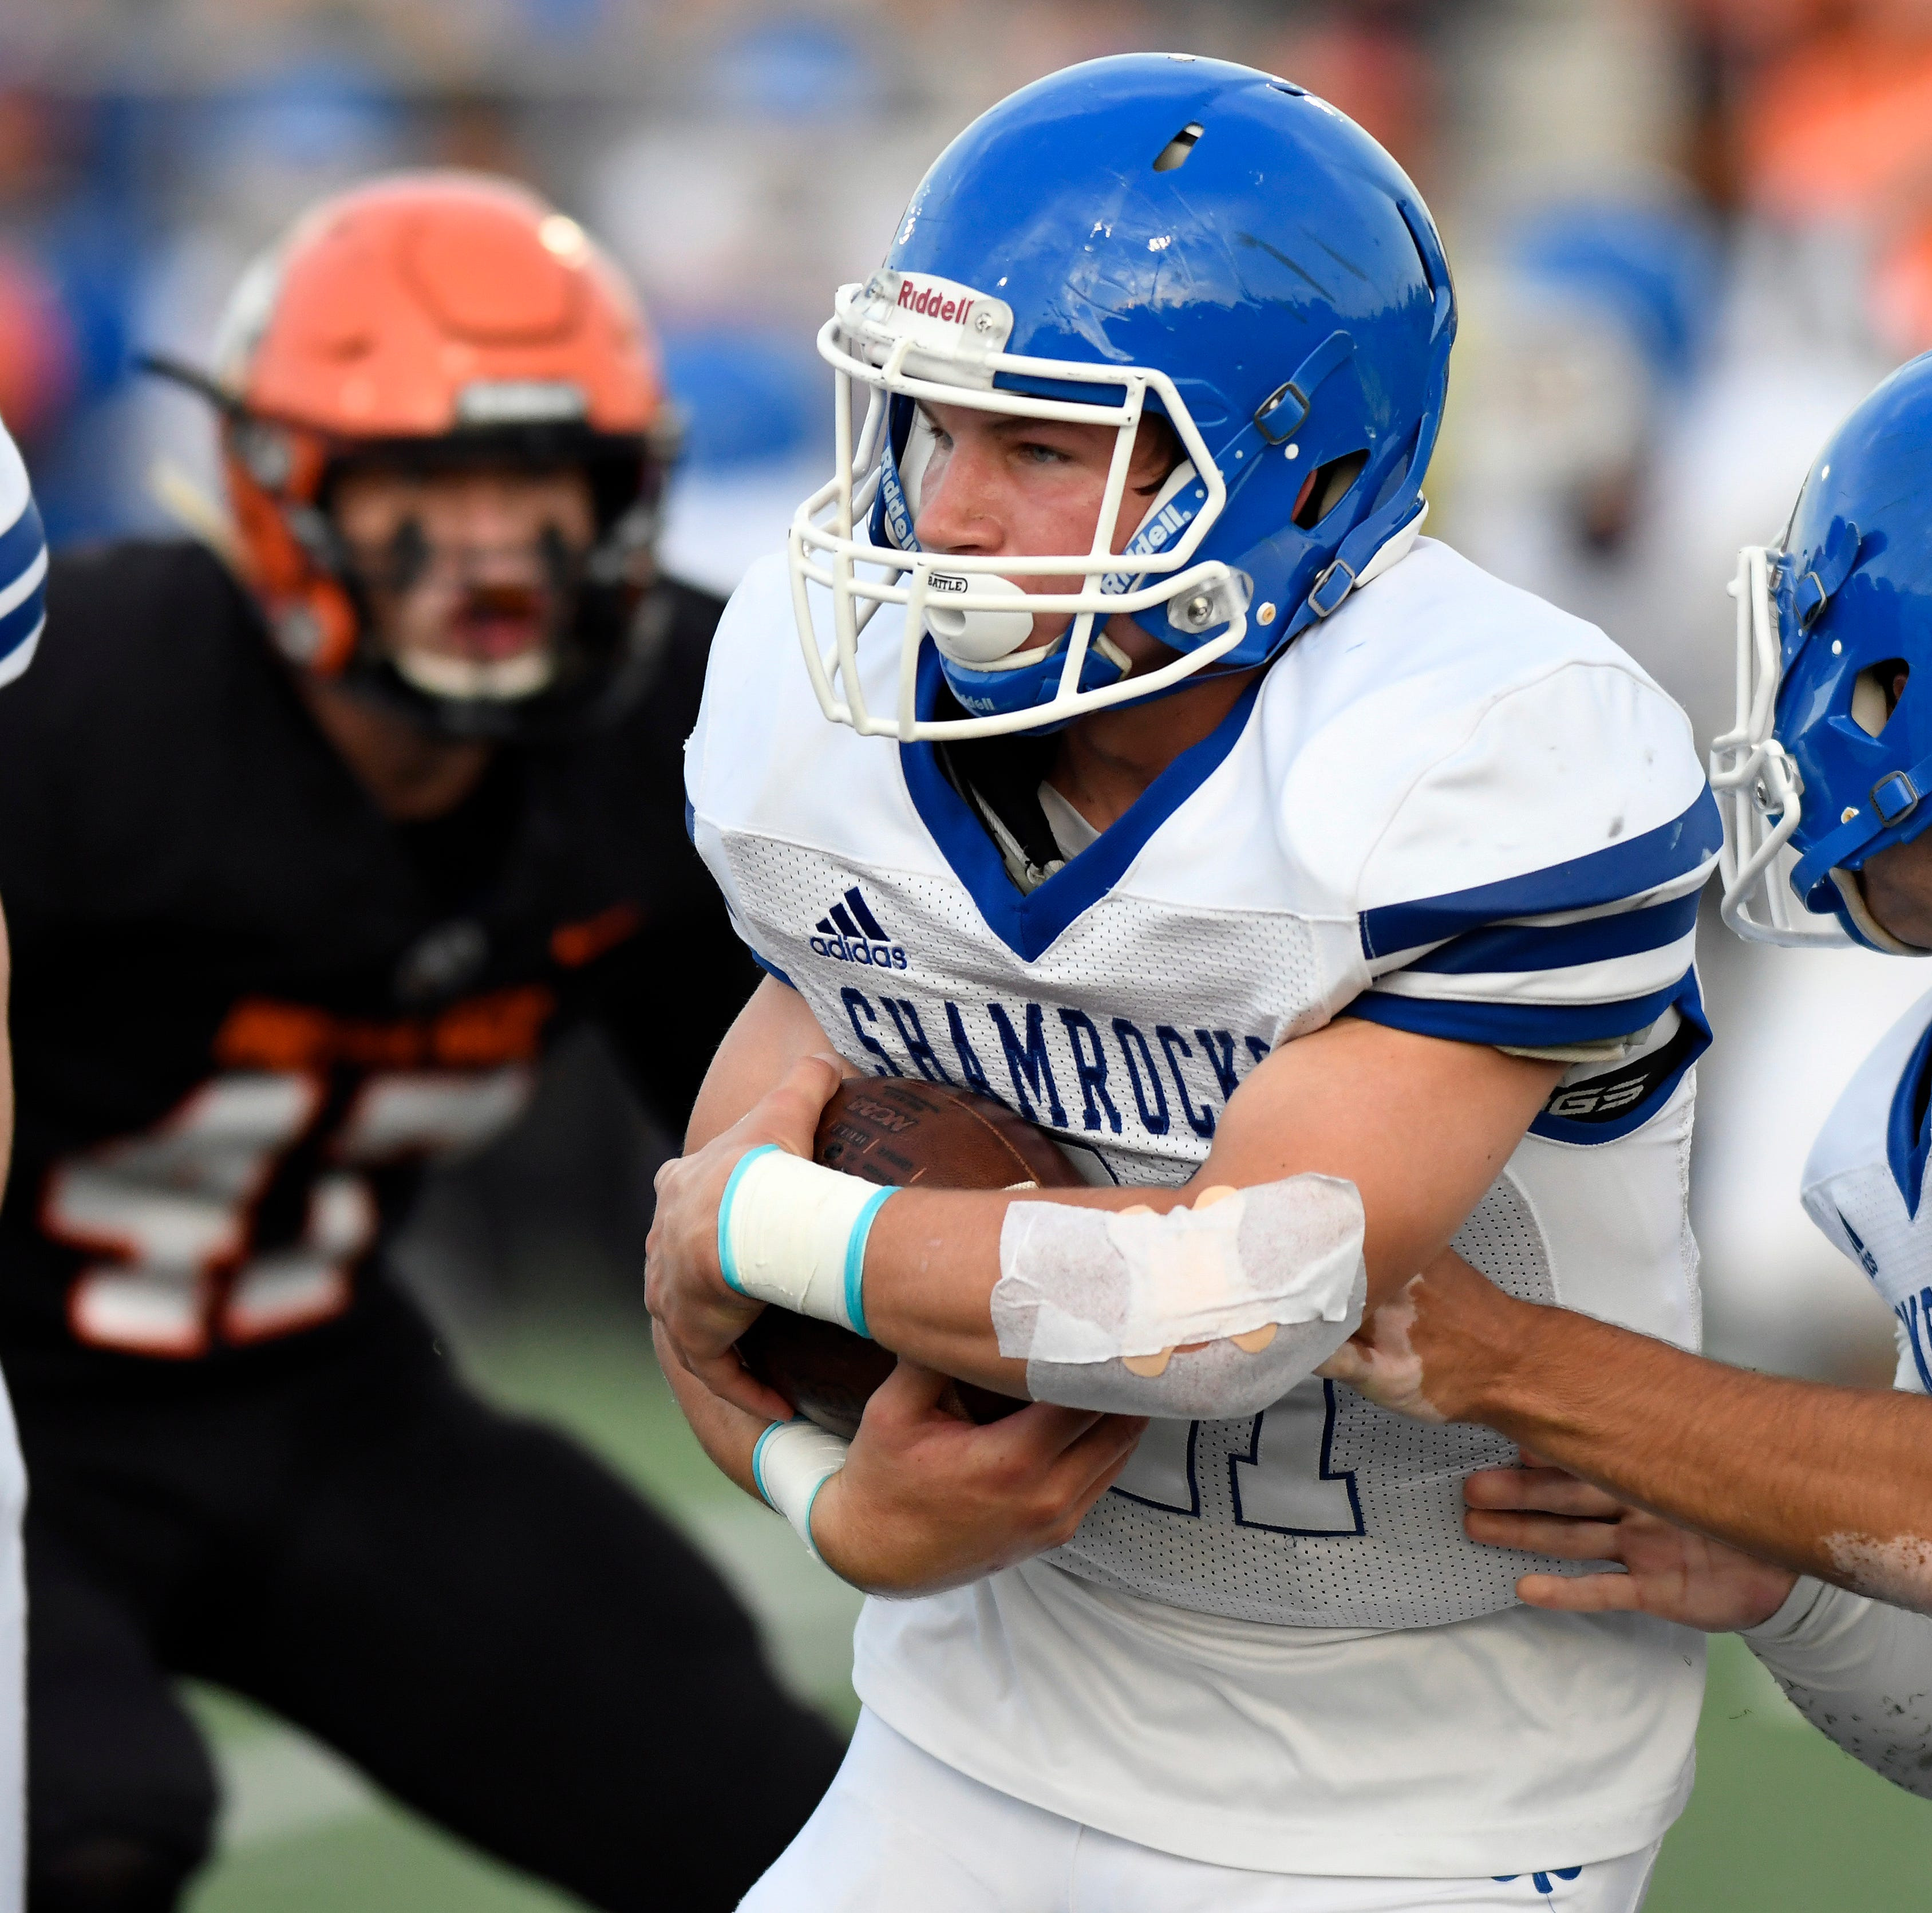 Catholic Central bags fourth straight victory over Brother Rice